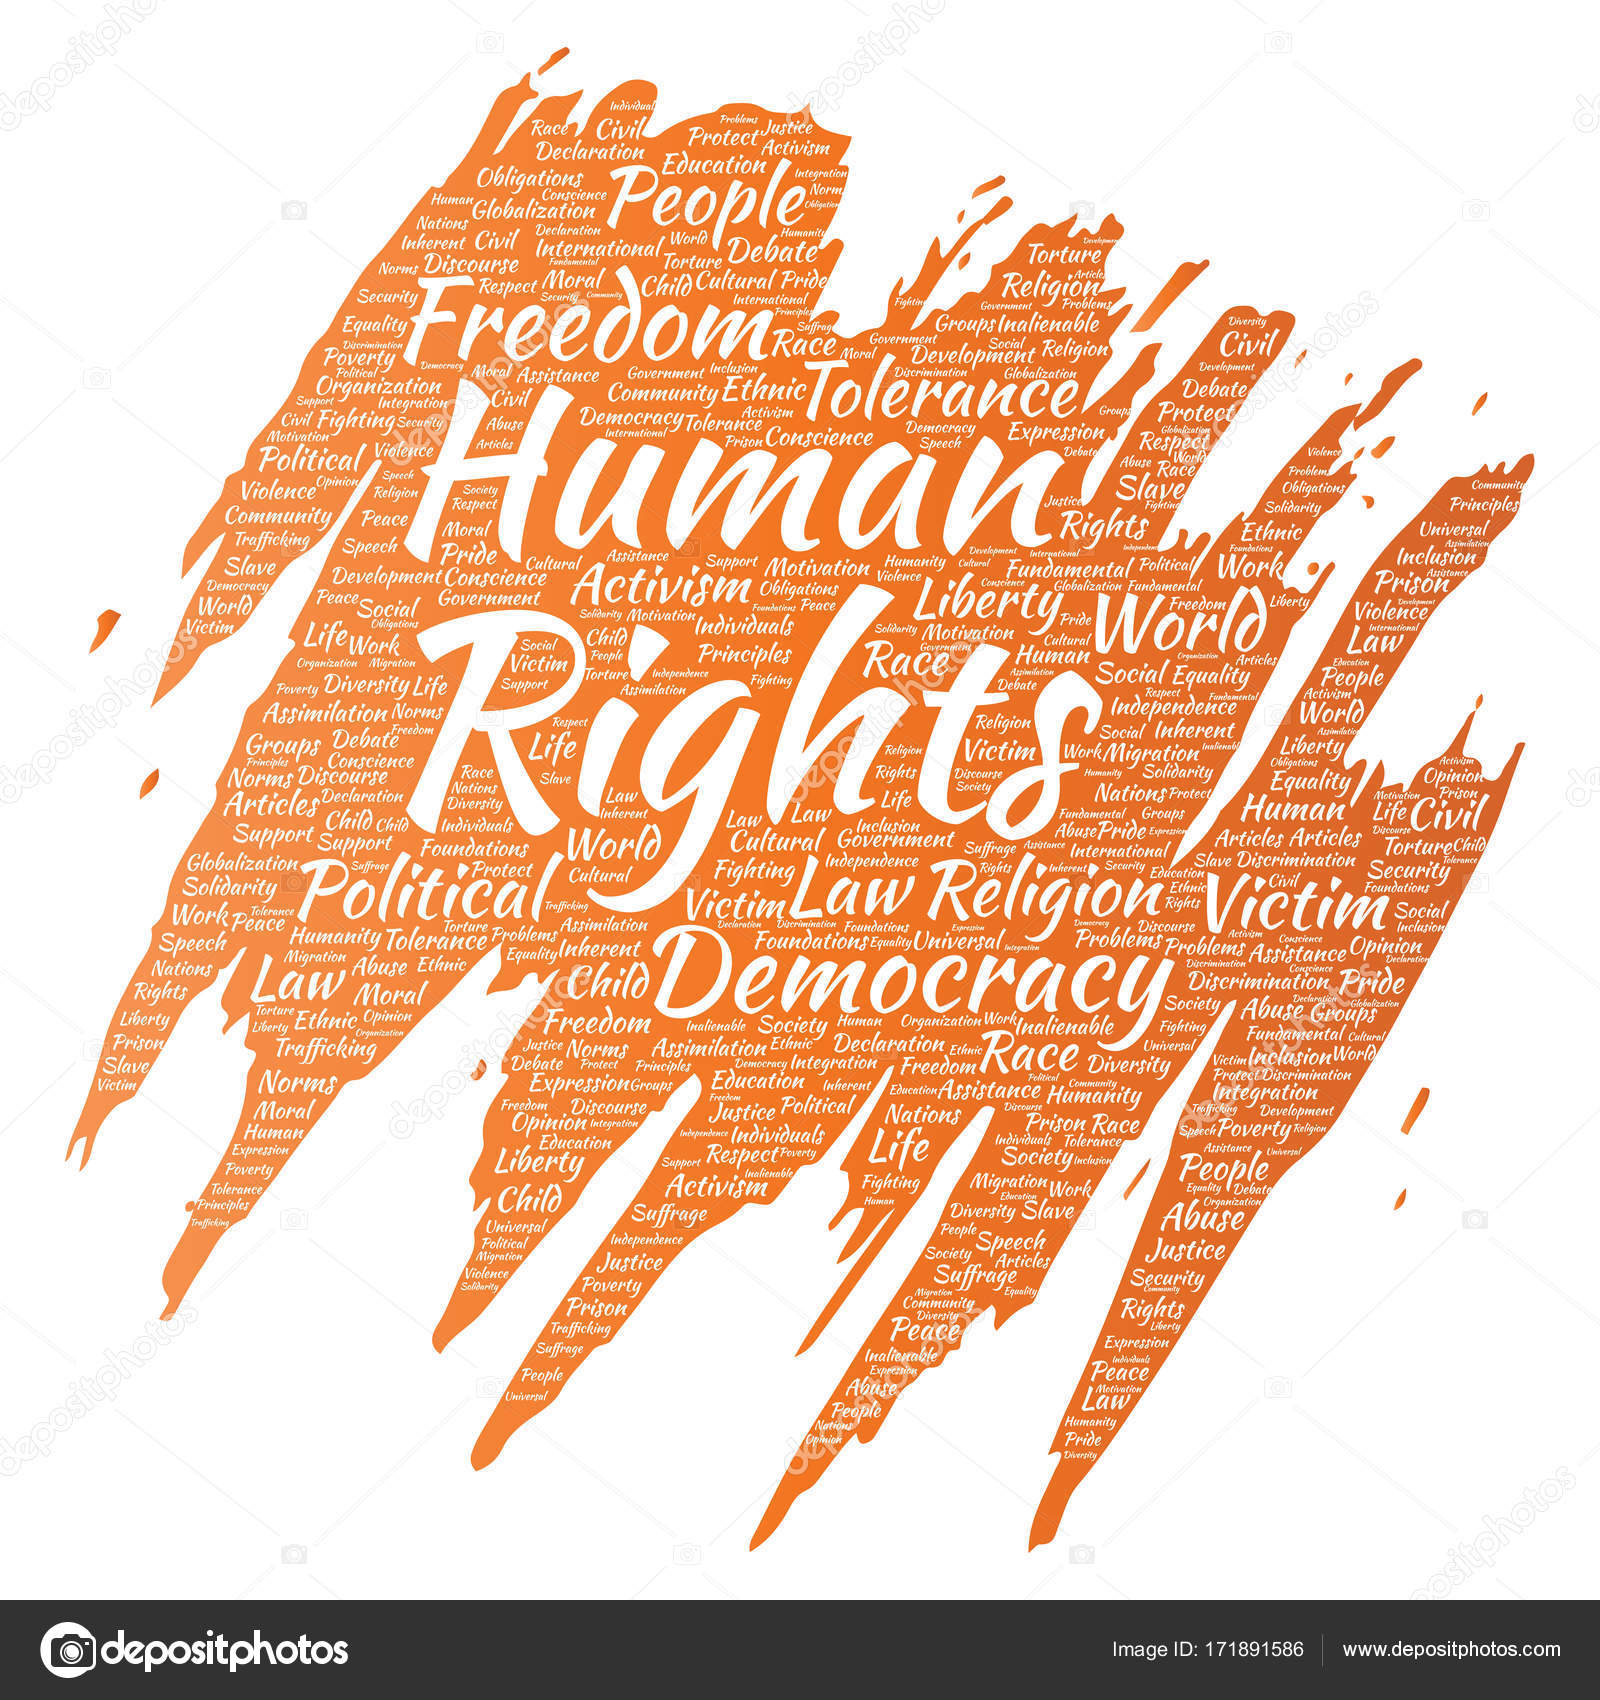 conceptual human rights political freedom democracy paint brush